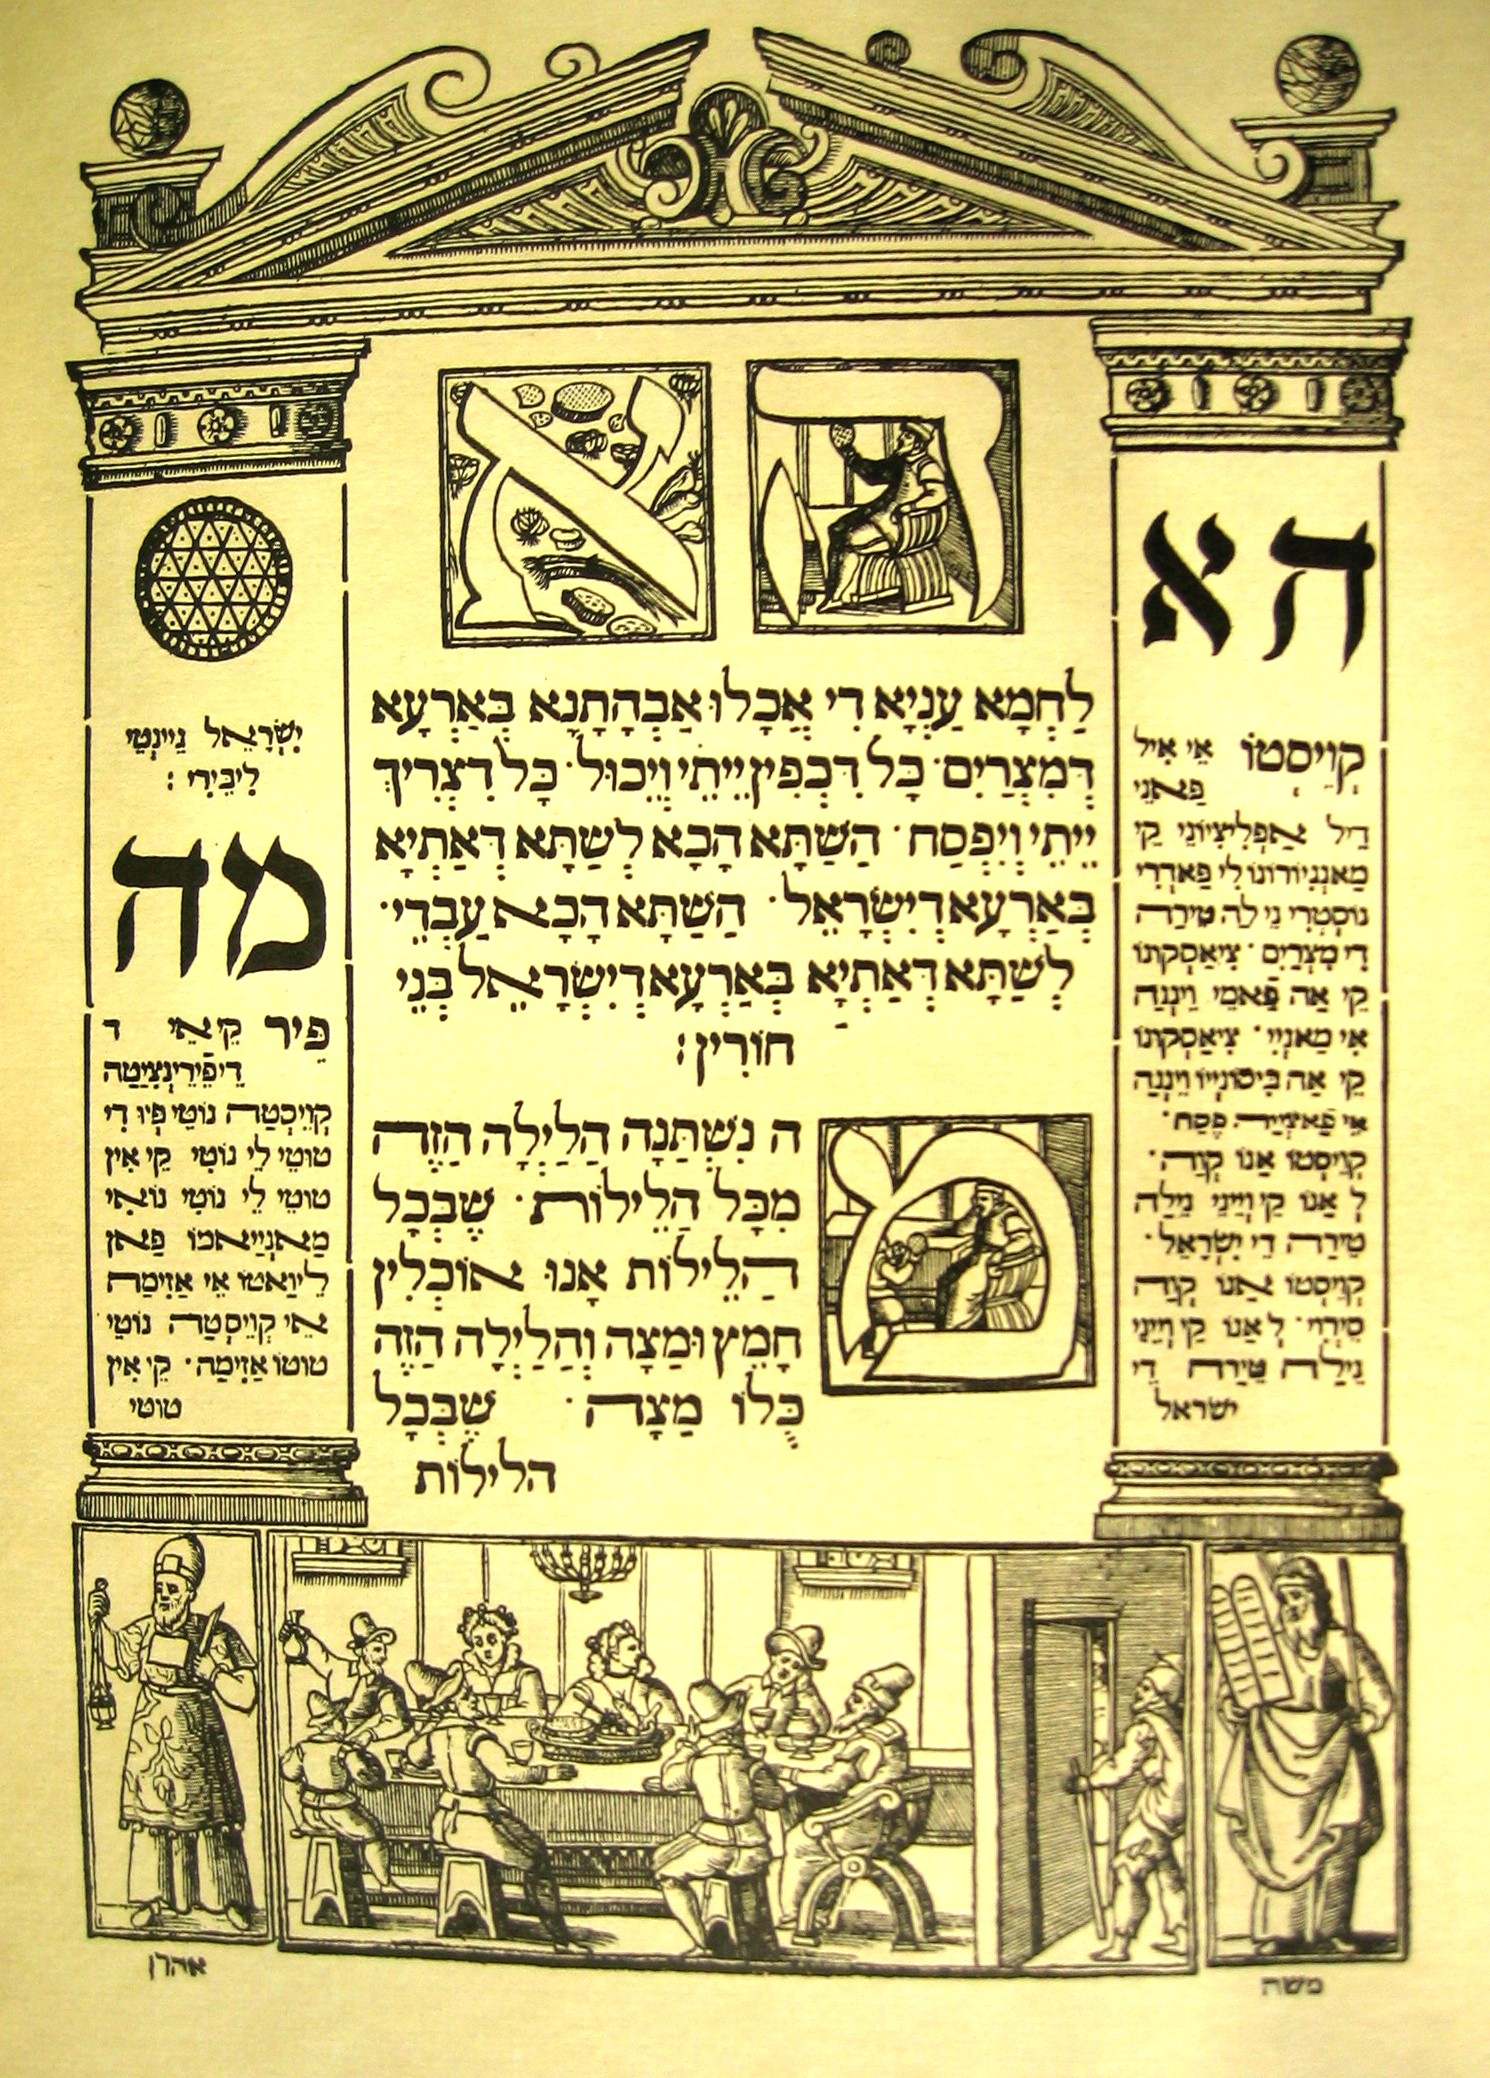 The illustrations on this page accompany the text that begins the seder.  The leader points to the matzah (unleavened bread) and recites in Aramaic,